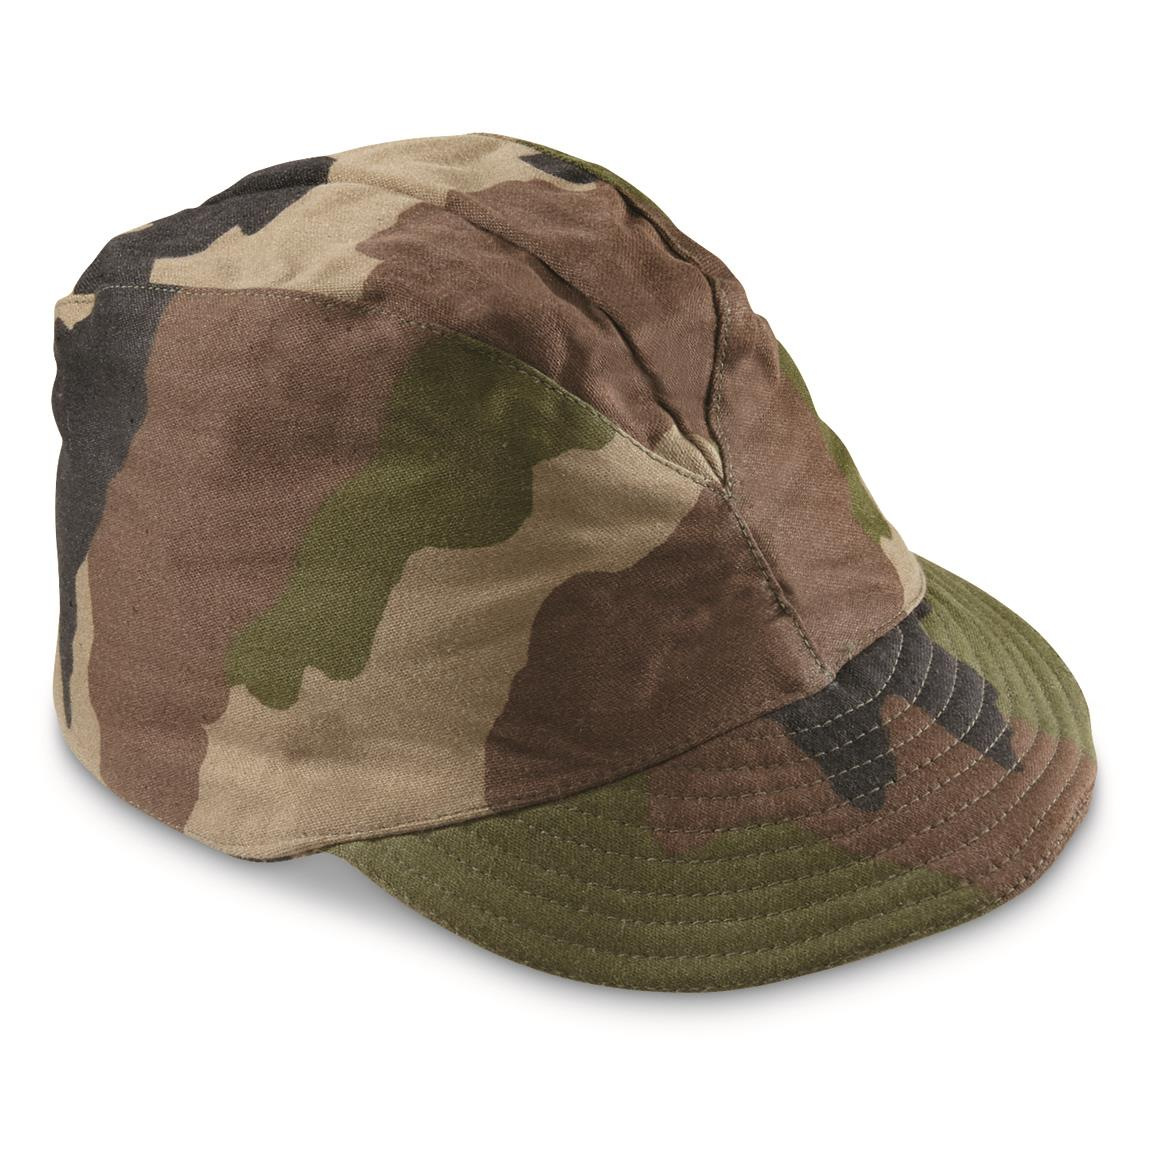 French Military Surplus F1 Field Caps, 3 pack, New